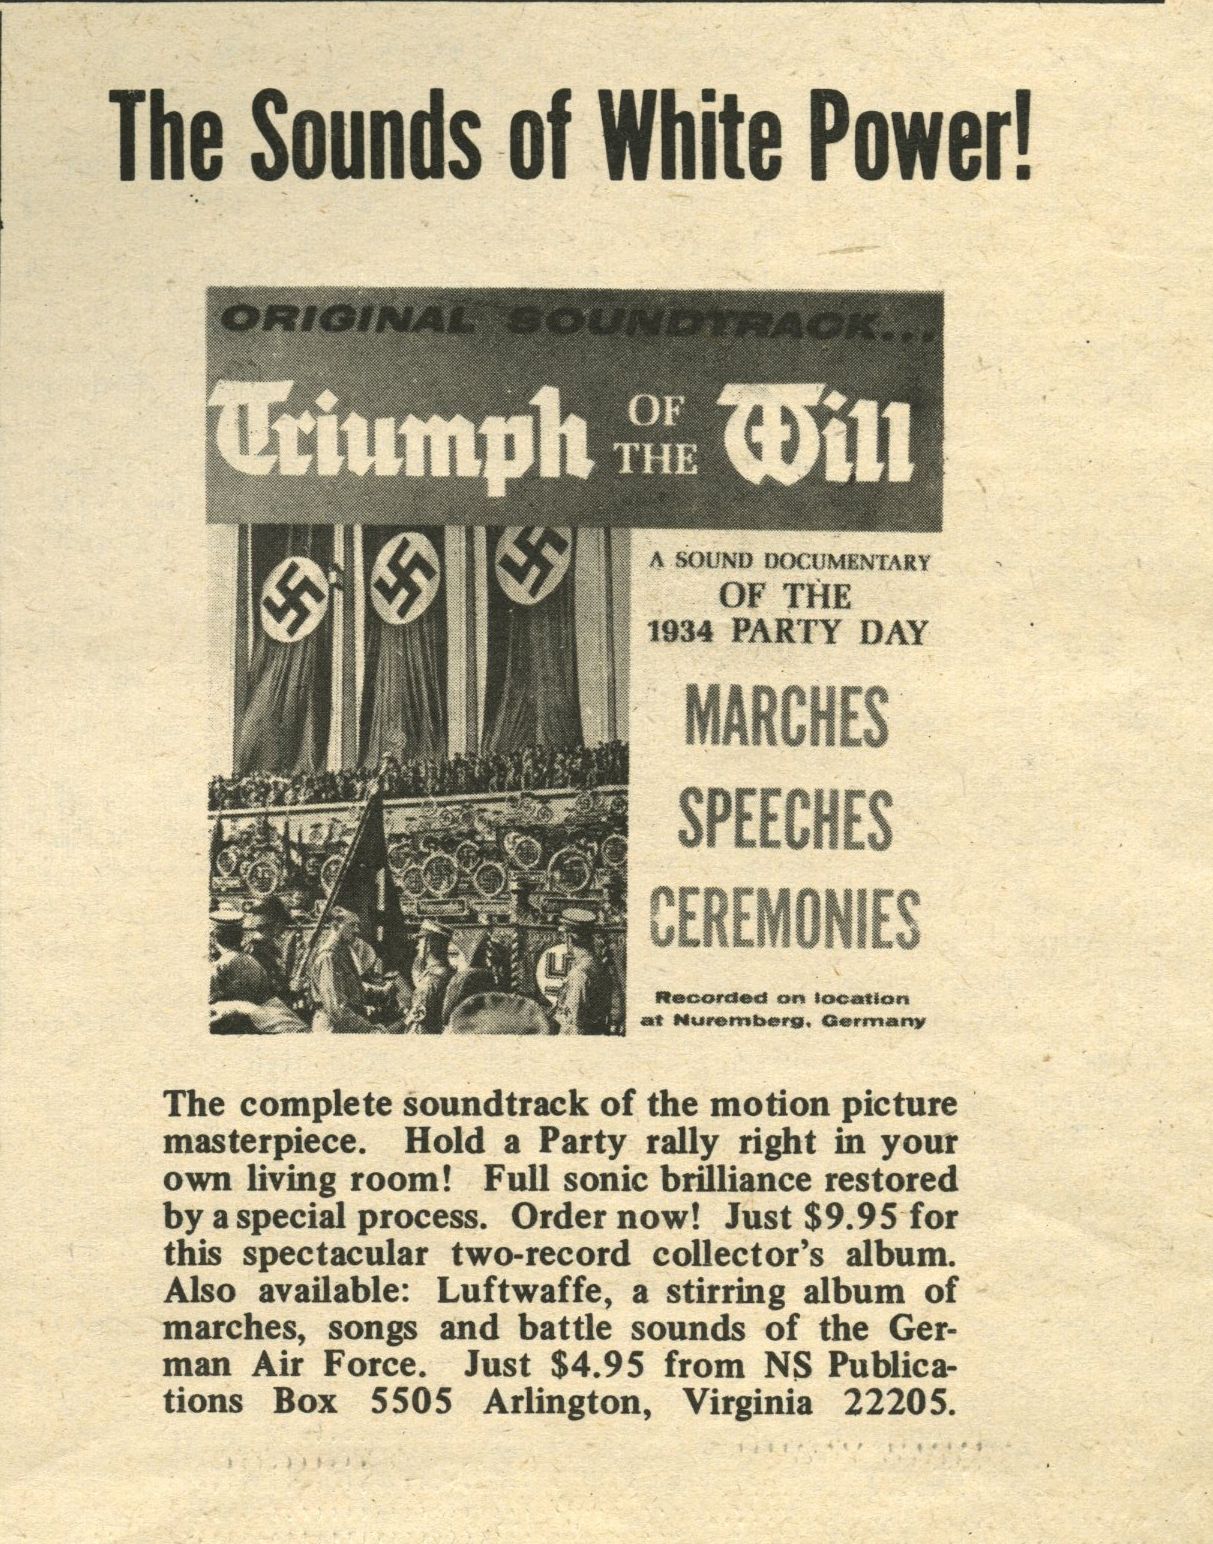 Beth Ahabah Museum_White Power Newspaper Feb 1972 p5 Sounds of White Power ad rsz.jpg